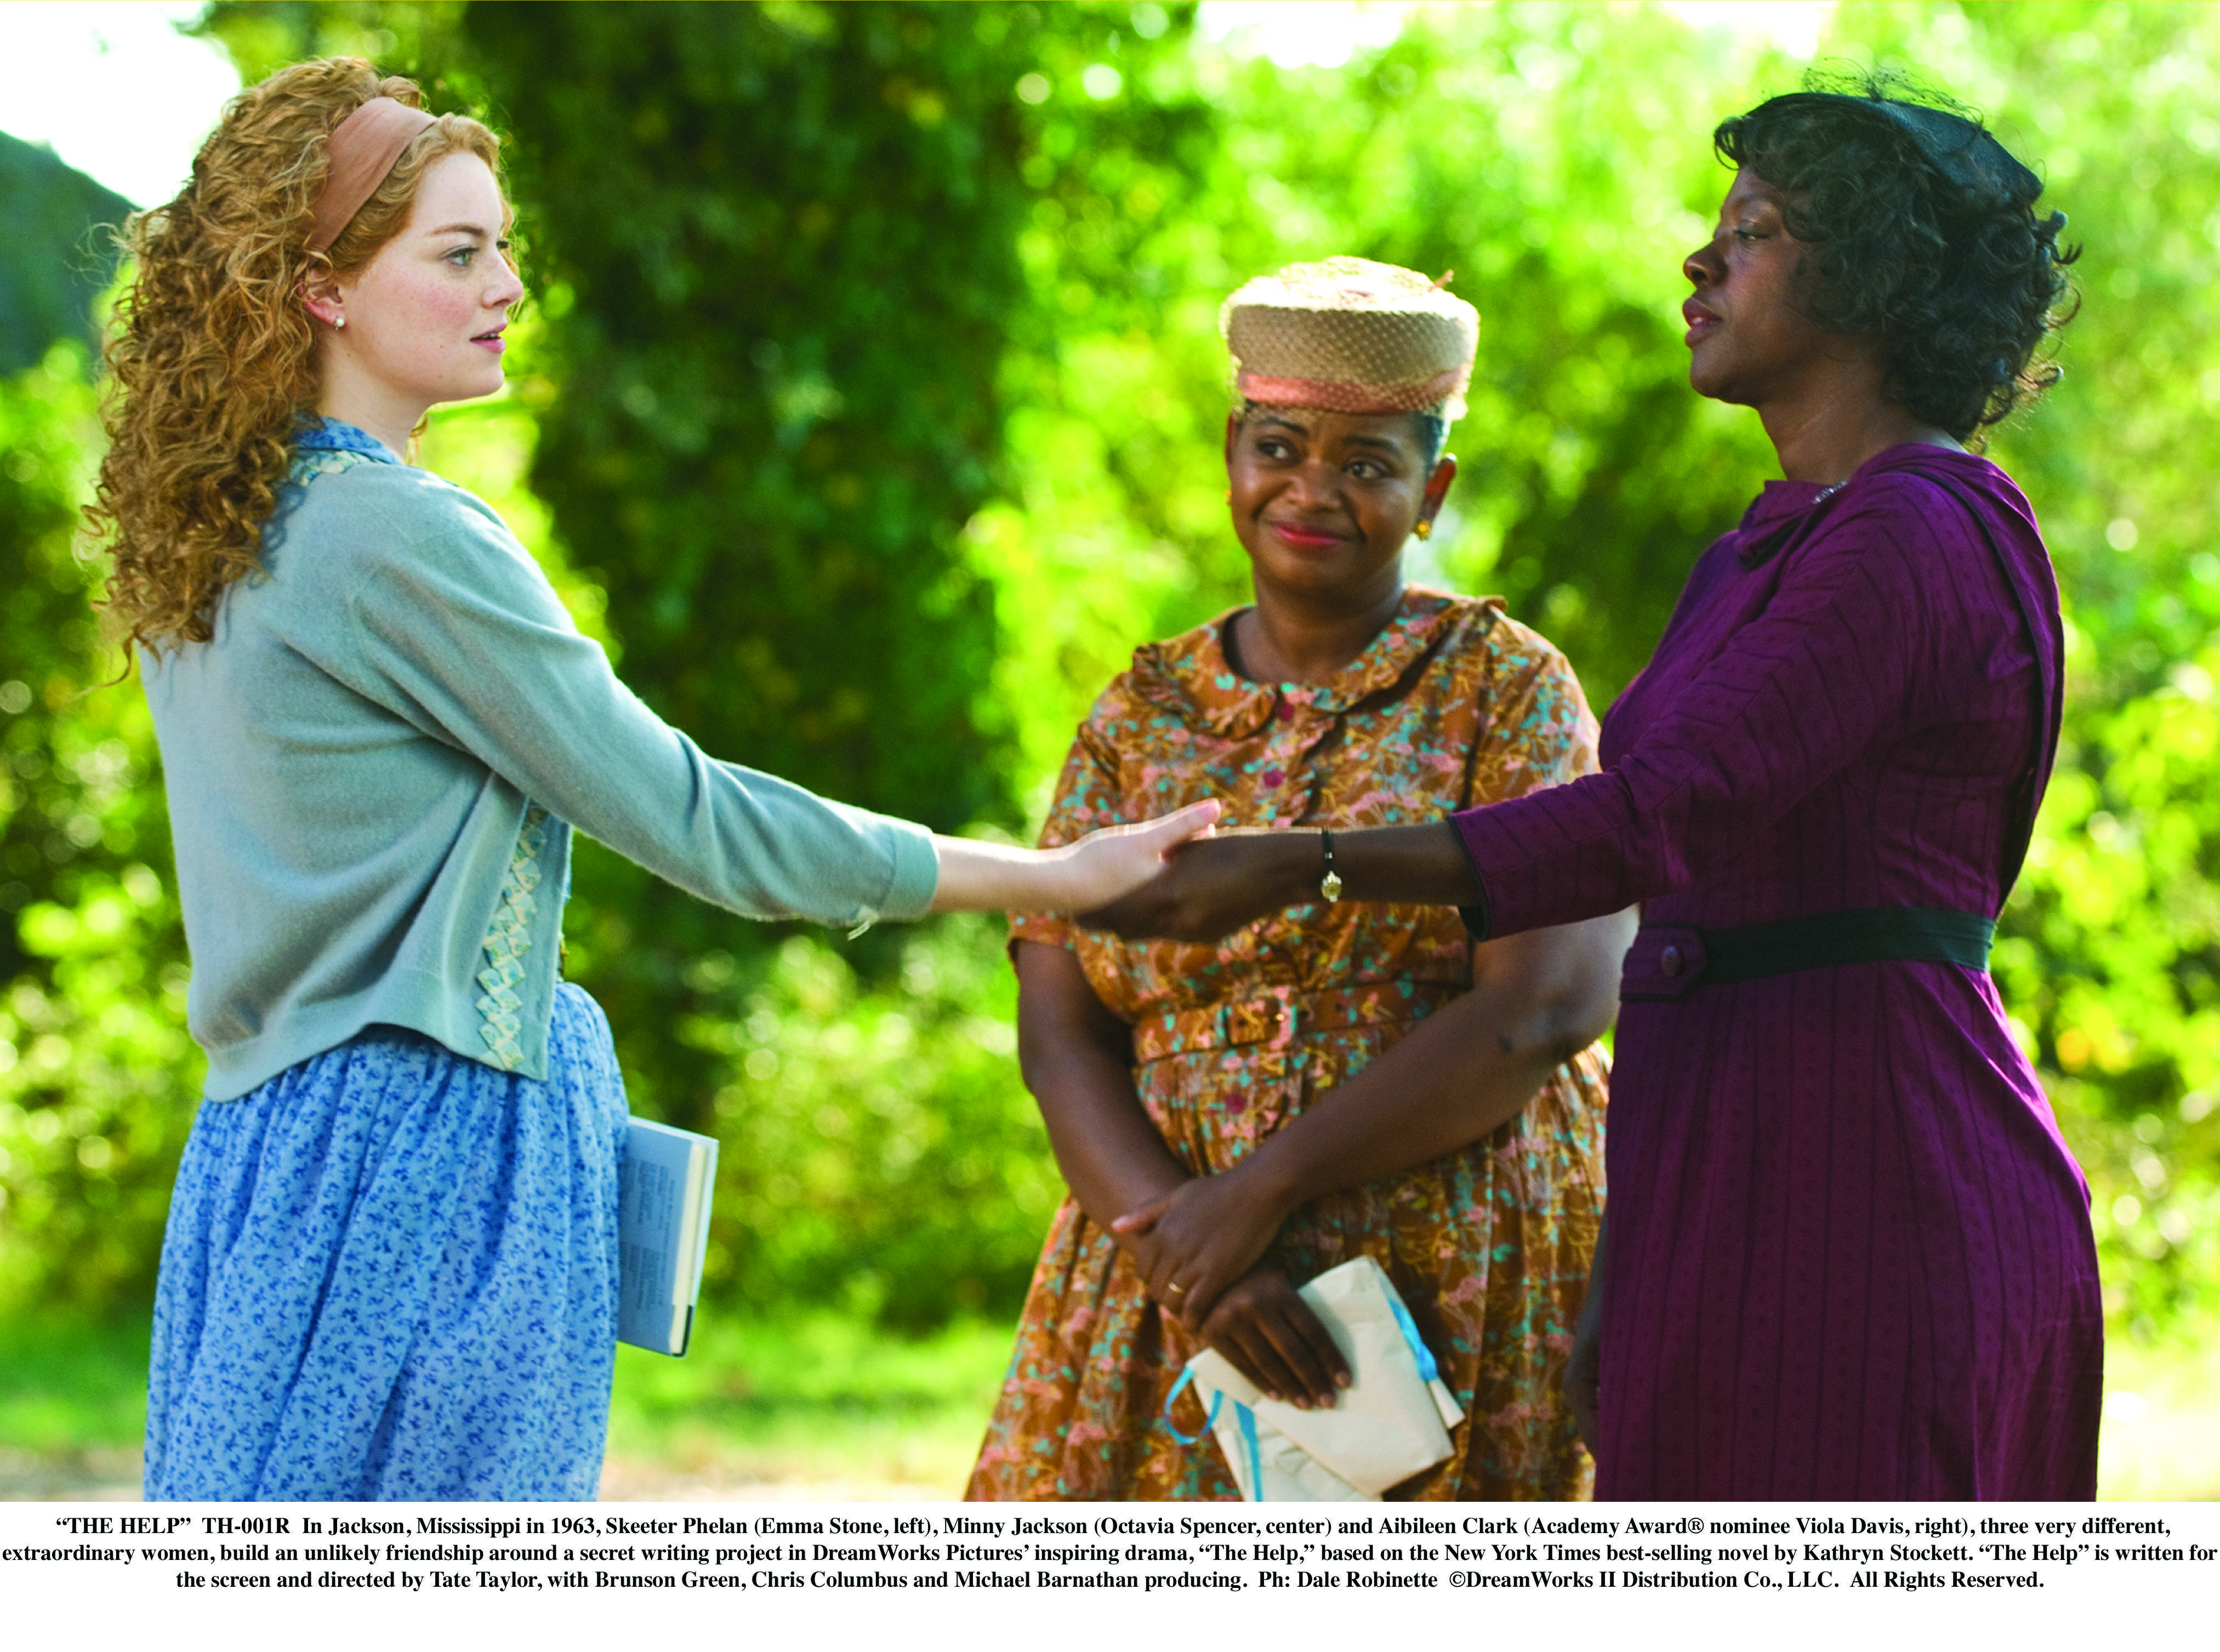 More equal than others: Set in 1960s Mississippi, Oscar winner 'The Help' revisits the racial divide of the era. | © DreamWorks II Distribution Co., LLC. All Rights Reserved.